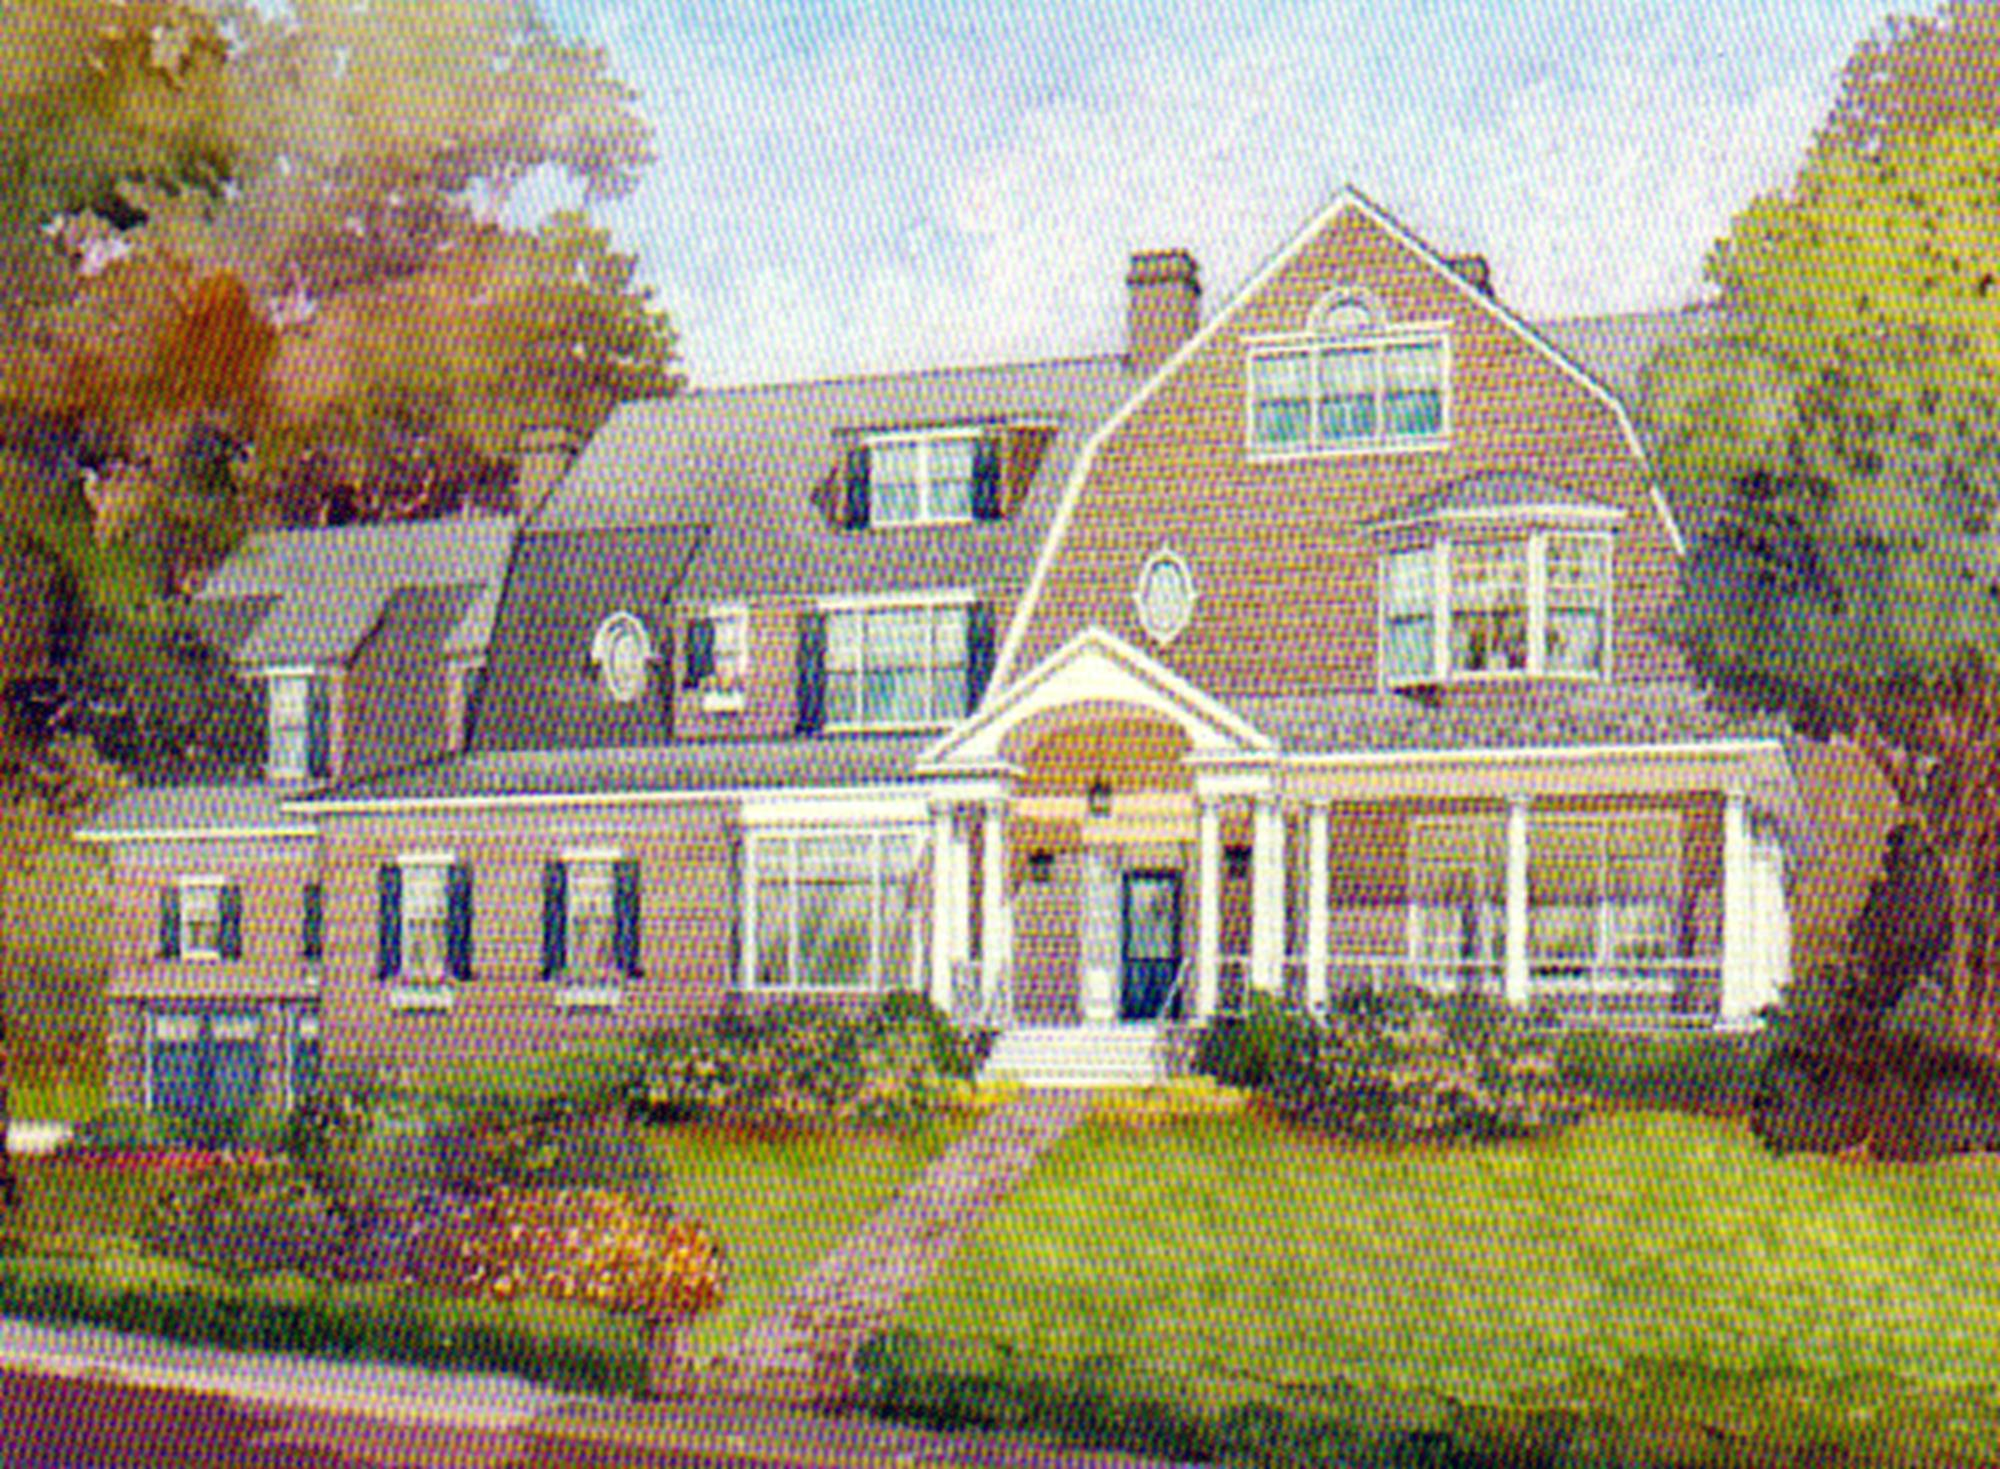 FIELDSTON VICINITY – Superb 6-Bd. Dutch Colonial-Style Mansion w/ Pool